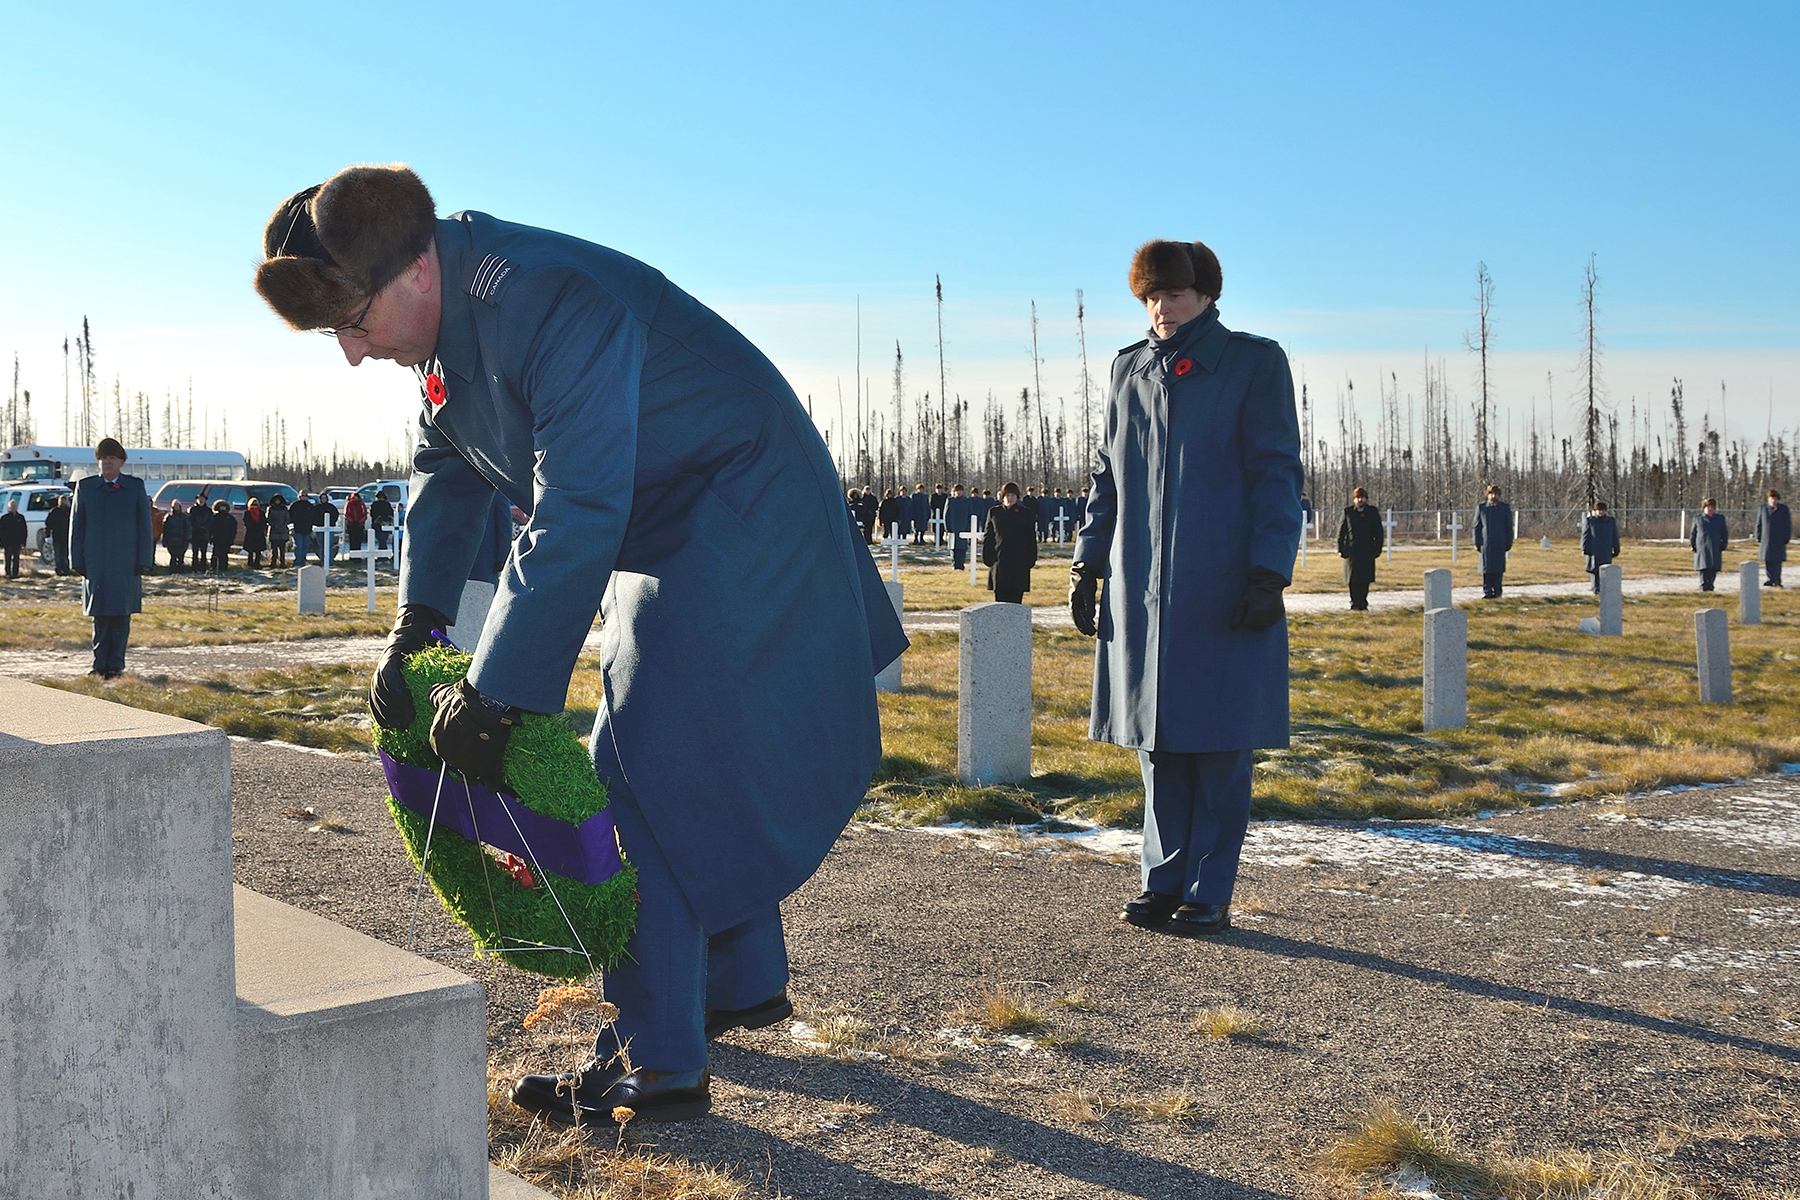 In the Commonwealth Cemetery at 5 Wing Goose Bay, Newfoundland and Labrador, Master Warrant Officer Lori White watches as Lieutenant-Colonel Luc Sabourin, commander of 5 Wing, places a wreath in tribute to the fallen during the November 11, 2015, Remembrance Day ceremony. PHOTO: Master Corporal Krista Blizzard